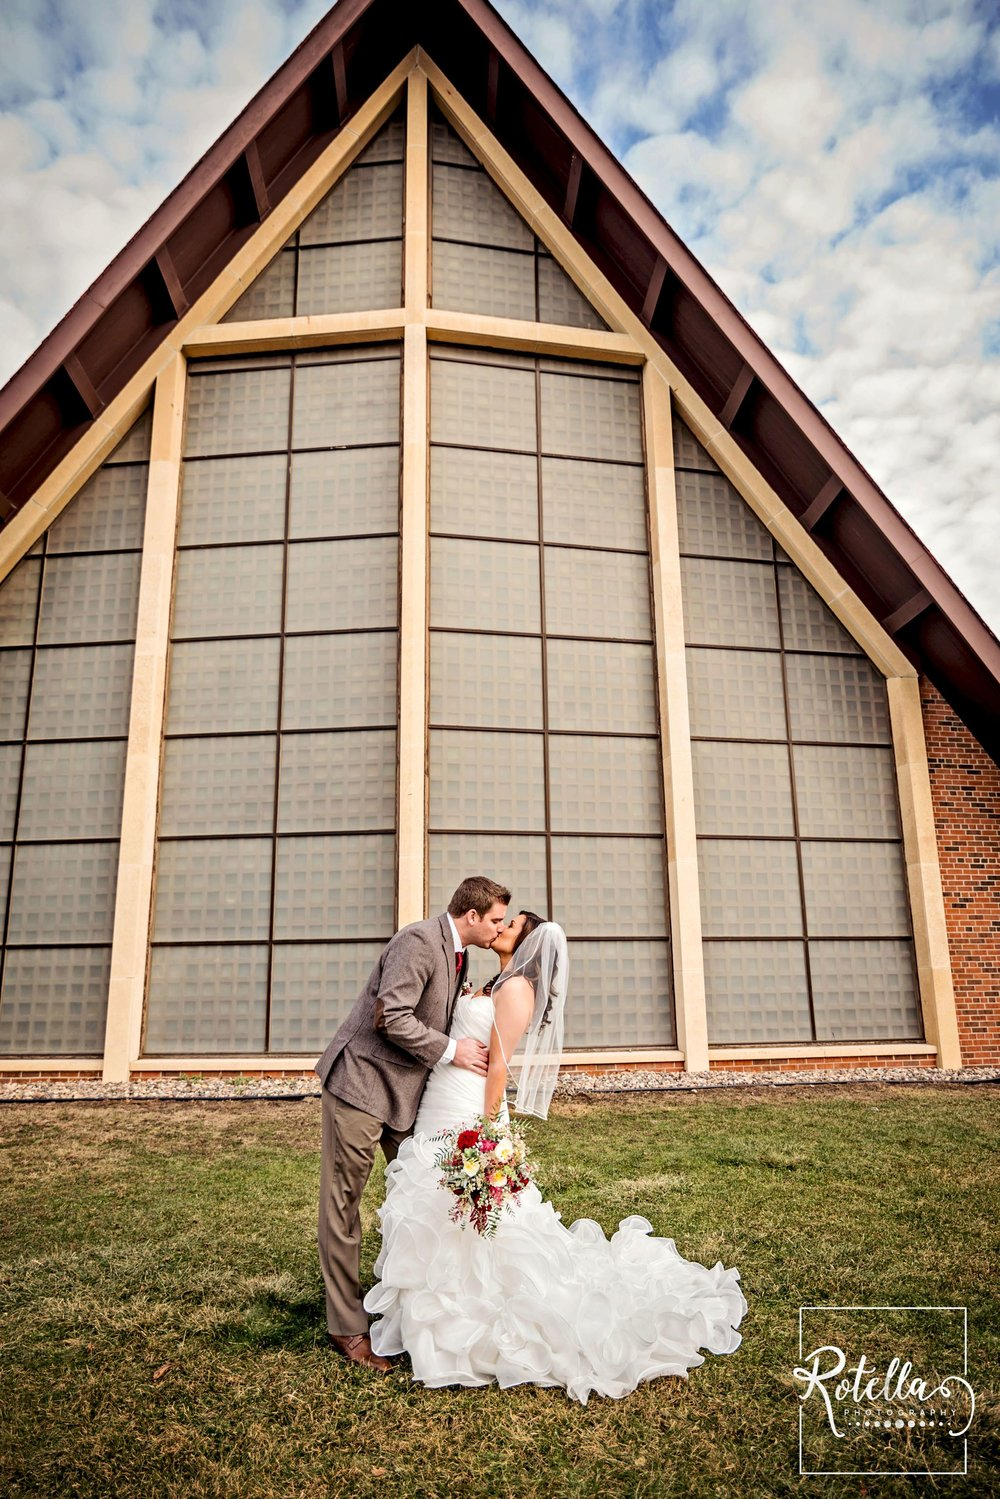 bride and groom kissing in front of church with green grass